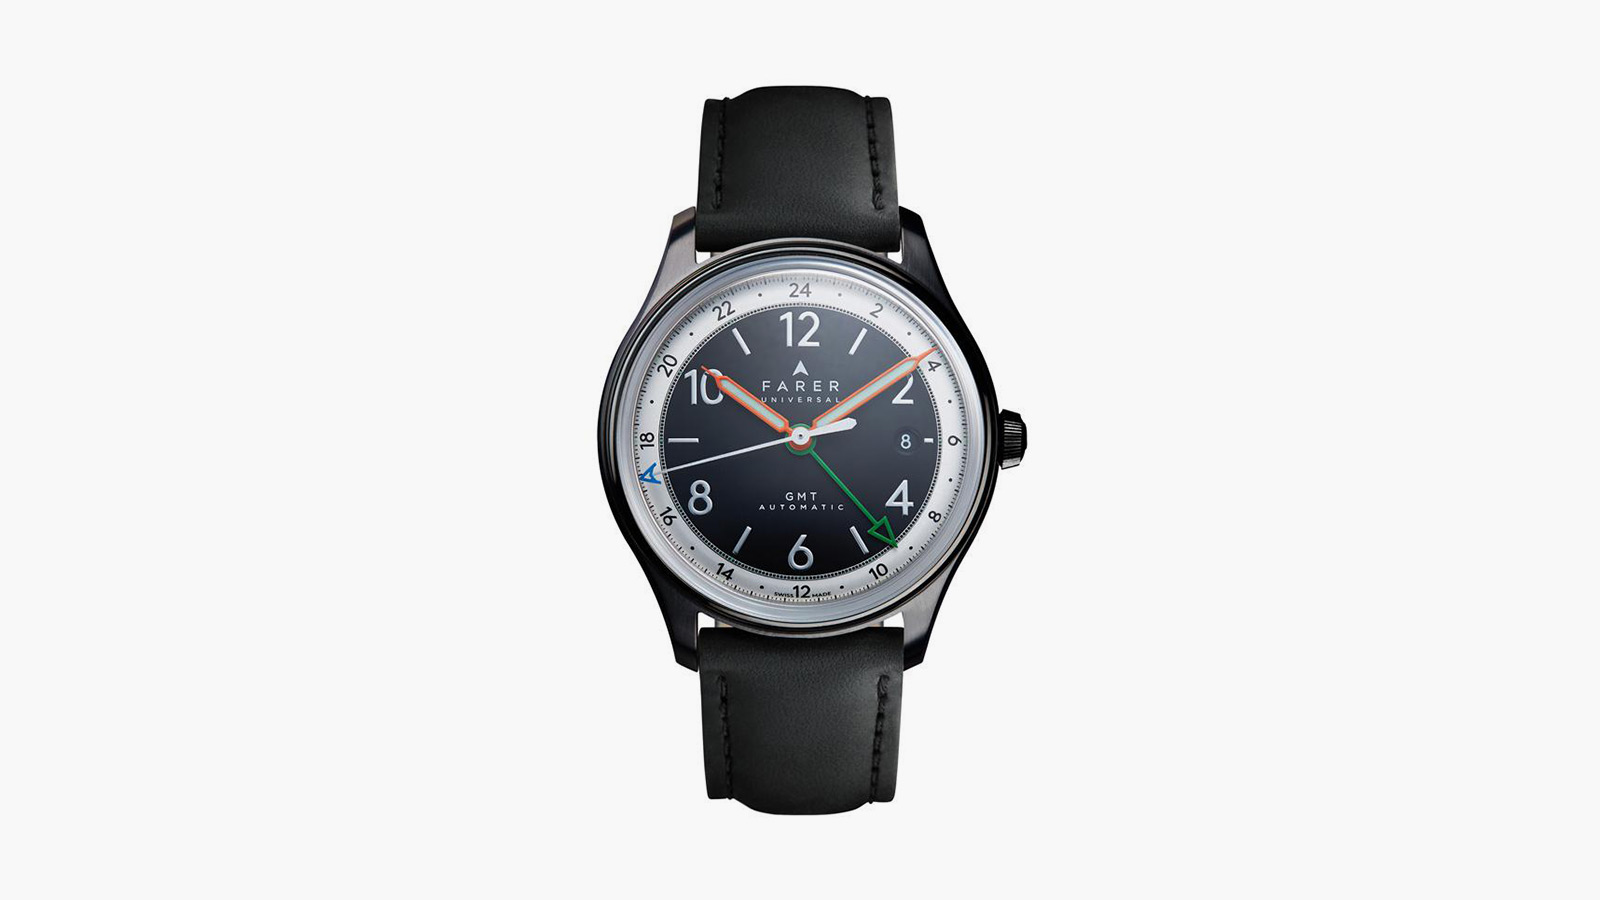 Farer Oxley GMT Black Limited Edition